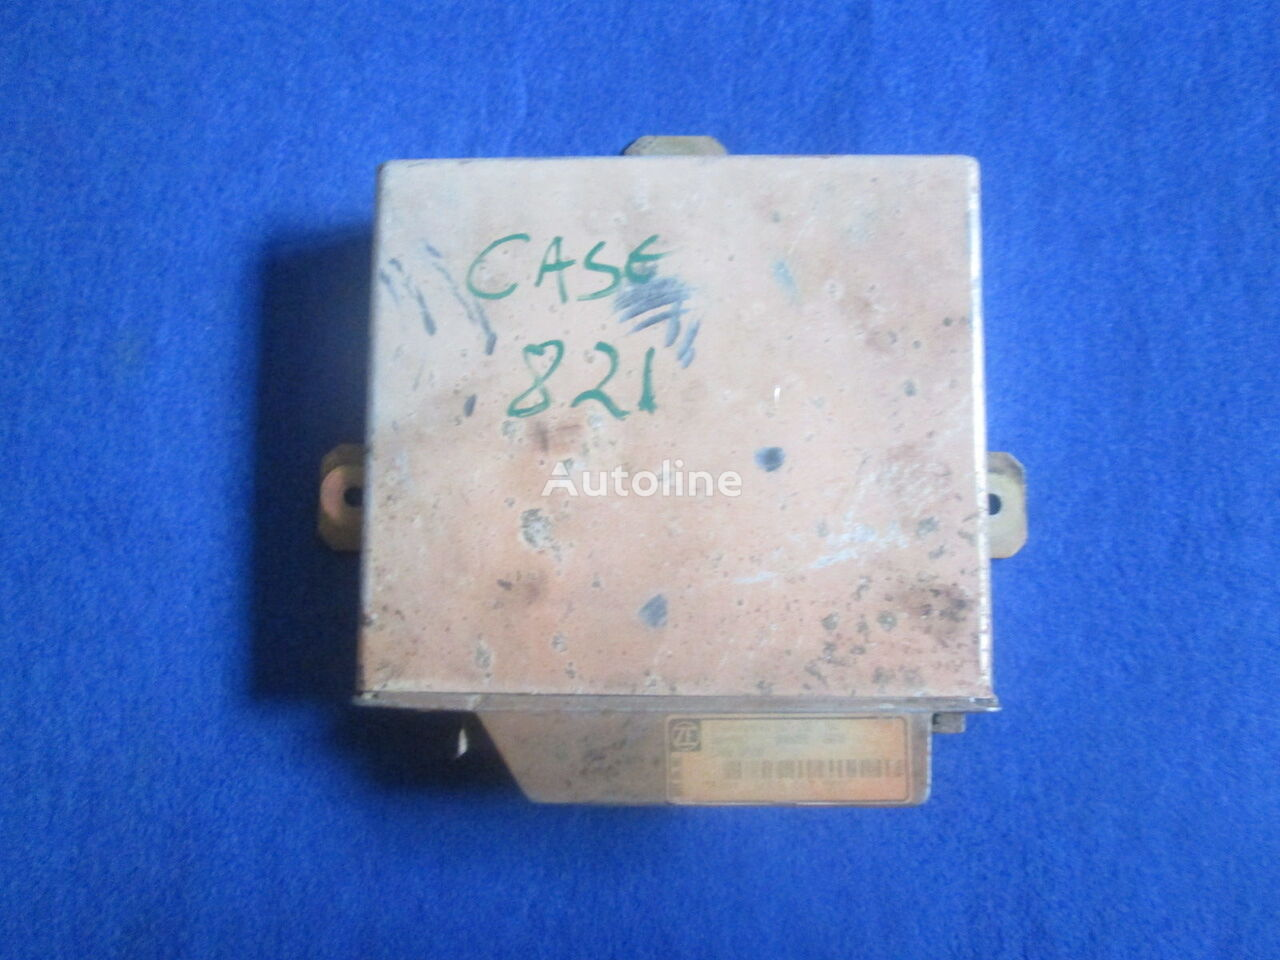 ZF control unit for CASE 821 wheel loader